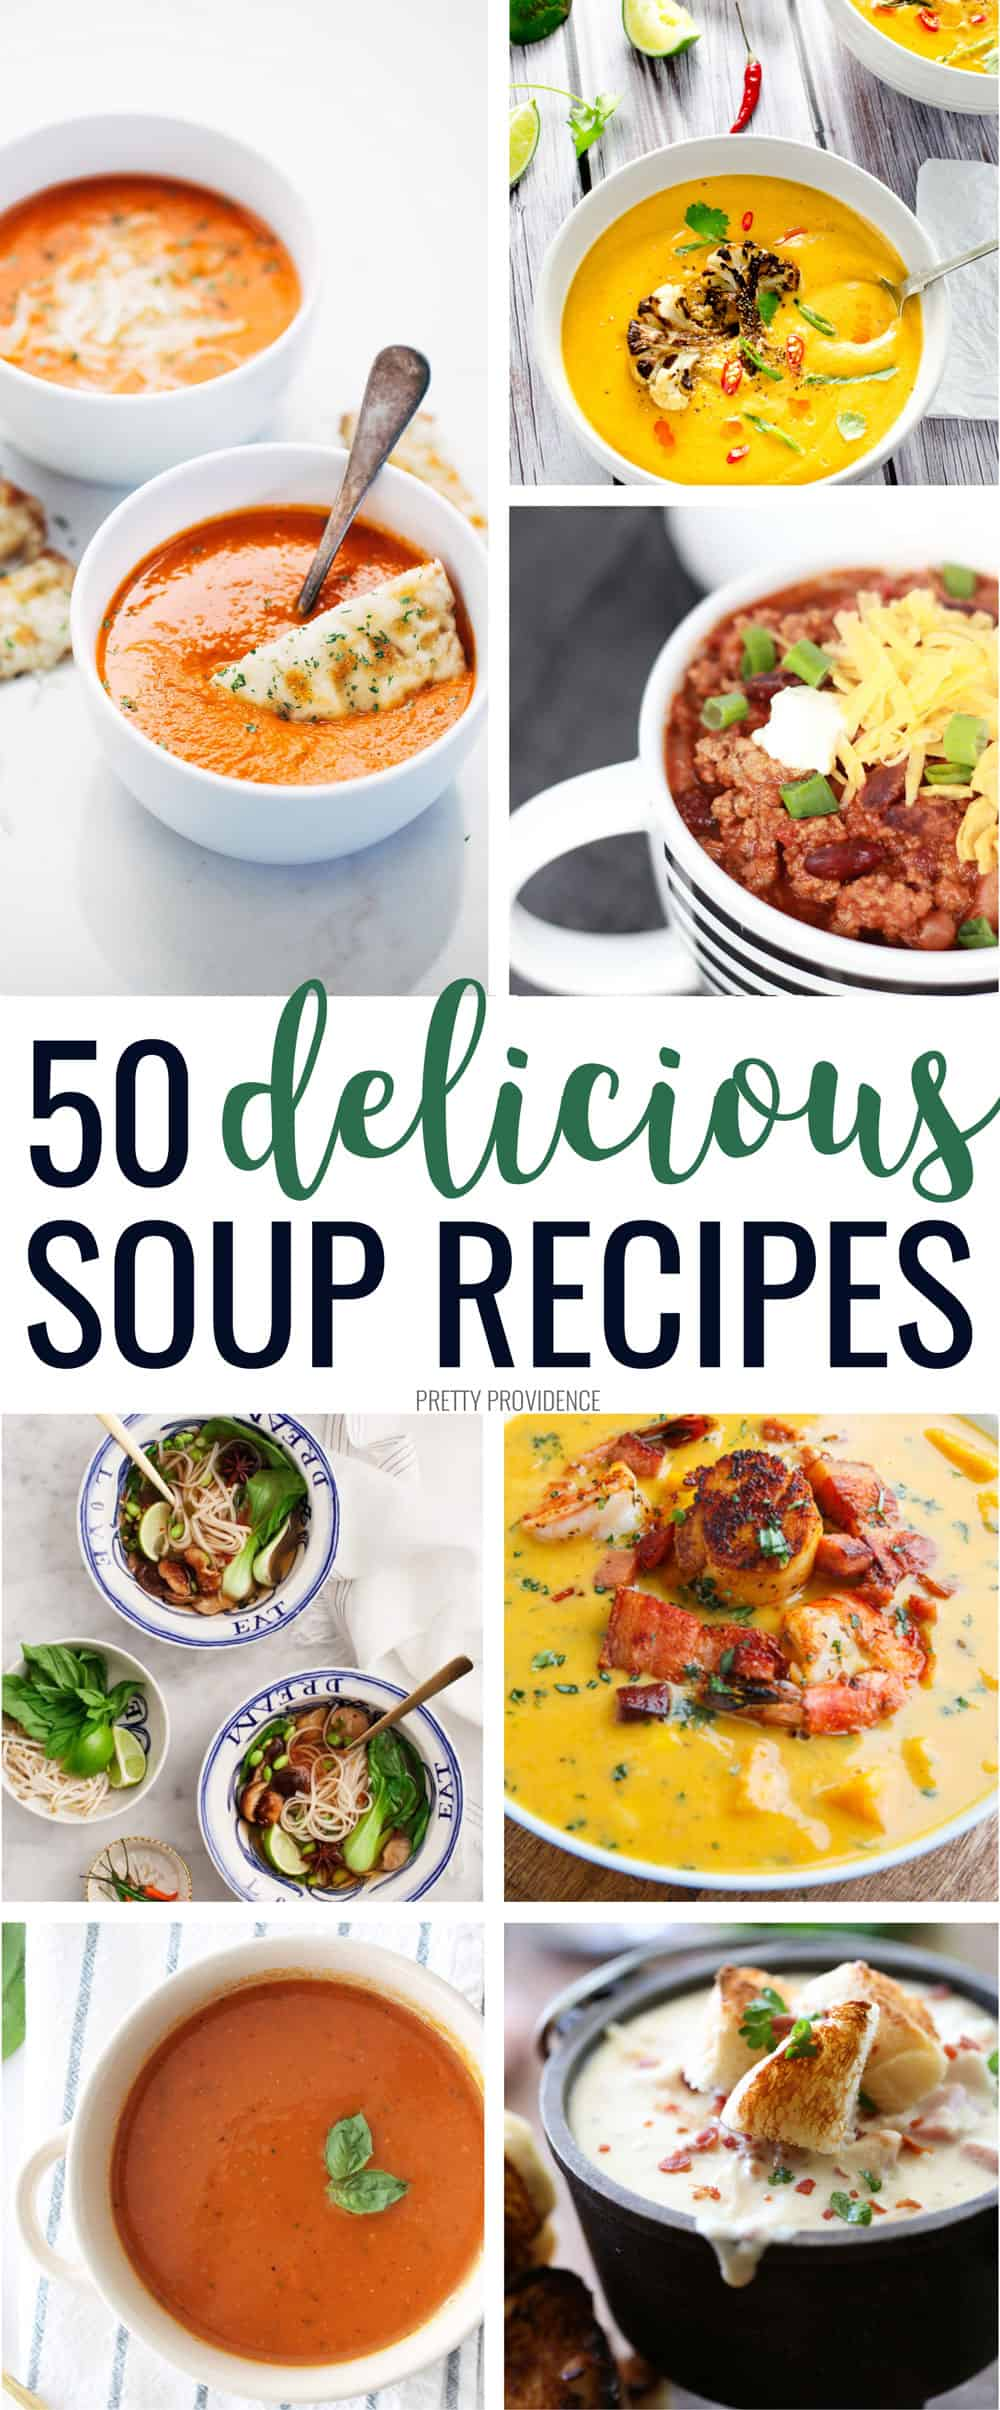 Tons of the best soup recipes! They are all easy recipes, some with chicken, some with ground beef, something for everyone! #soup #souprecipes #dinner #dinnerideas #soupseason #comfortfood #easyrecipe #easyfoodrecipe #easydinner